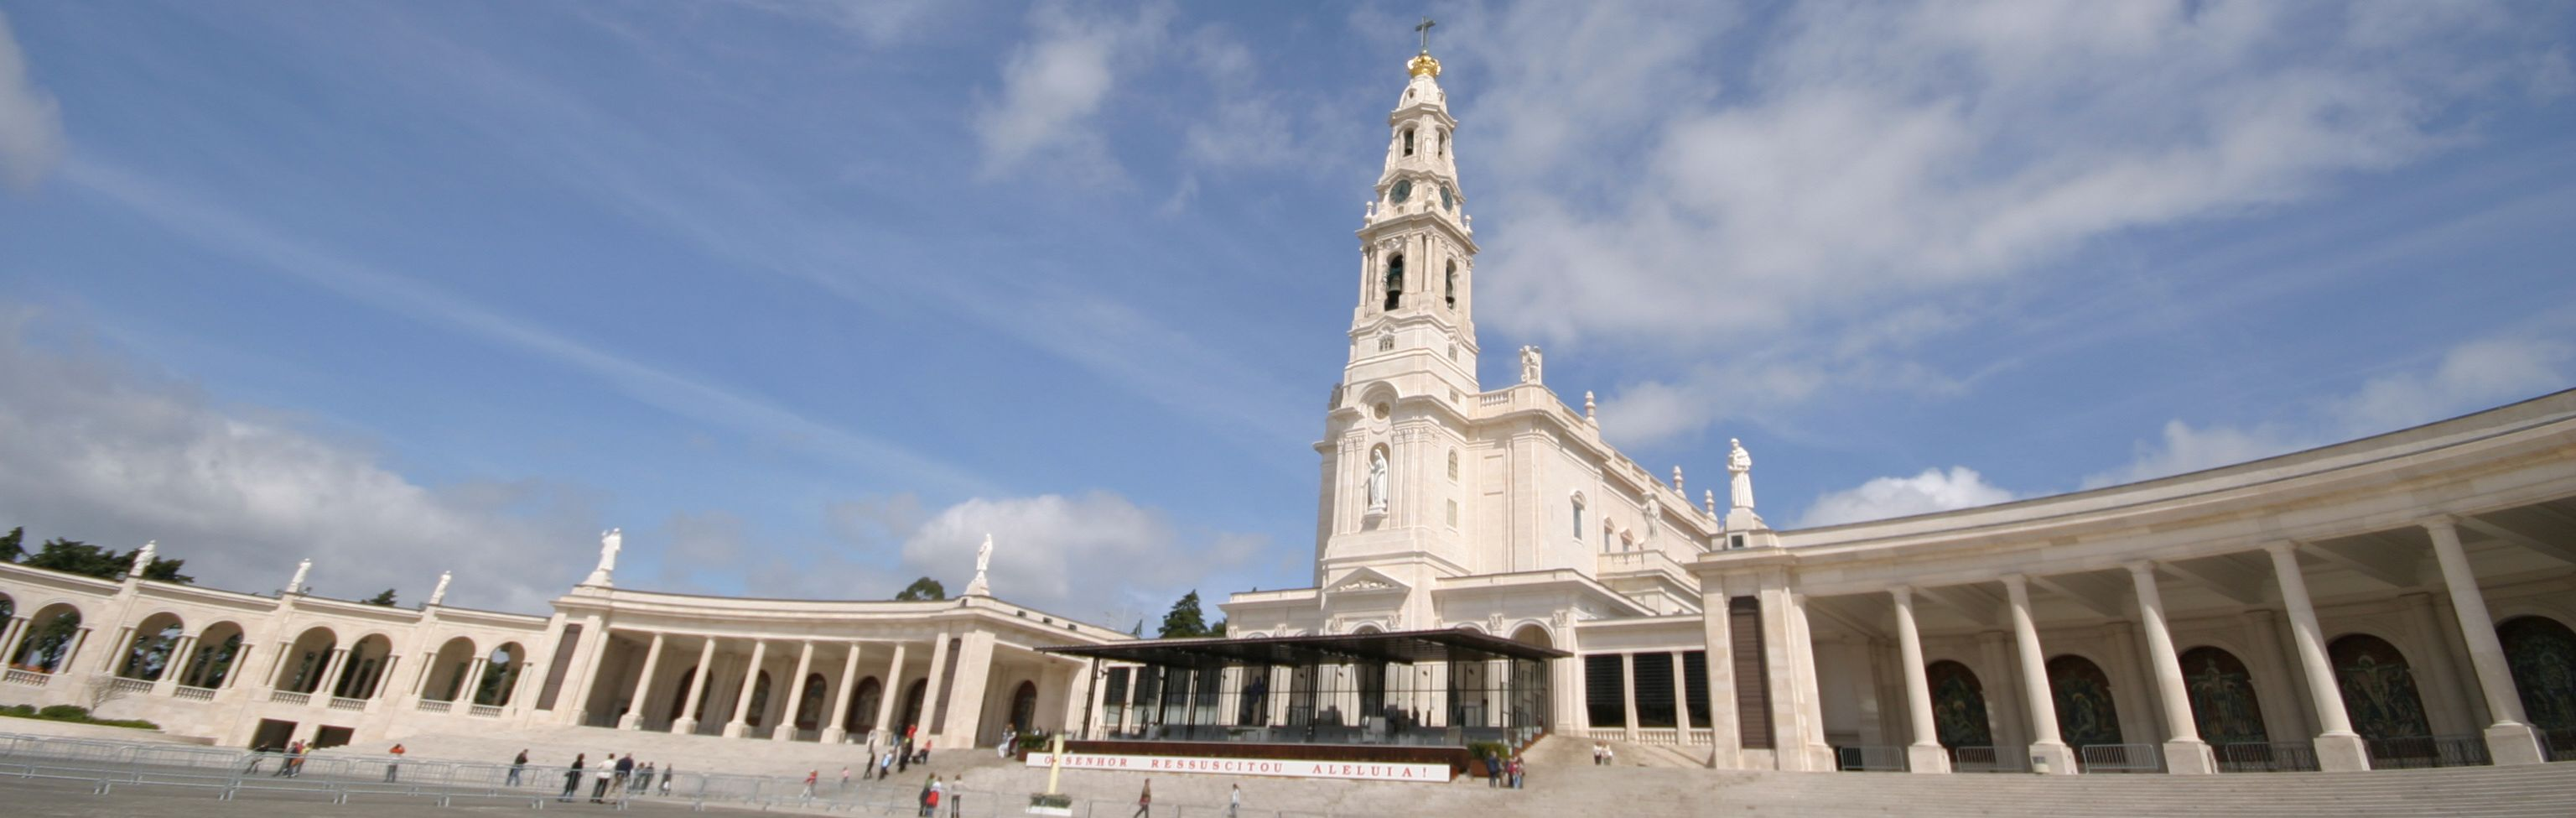 Fatima faith santuary in Portugal